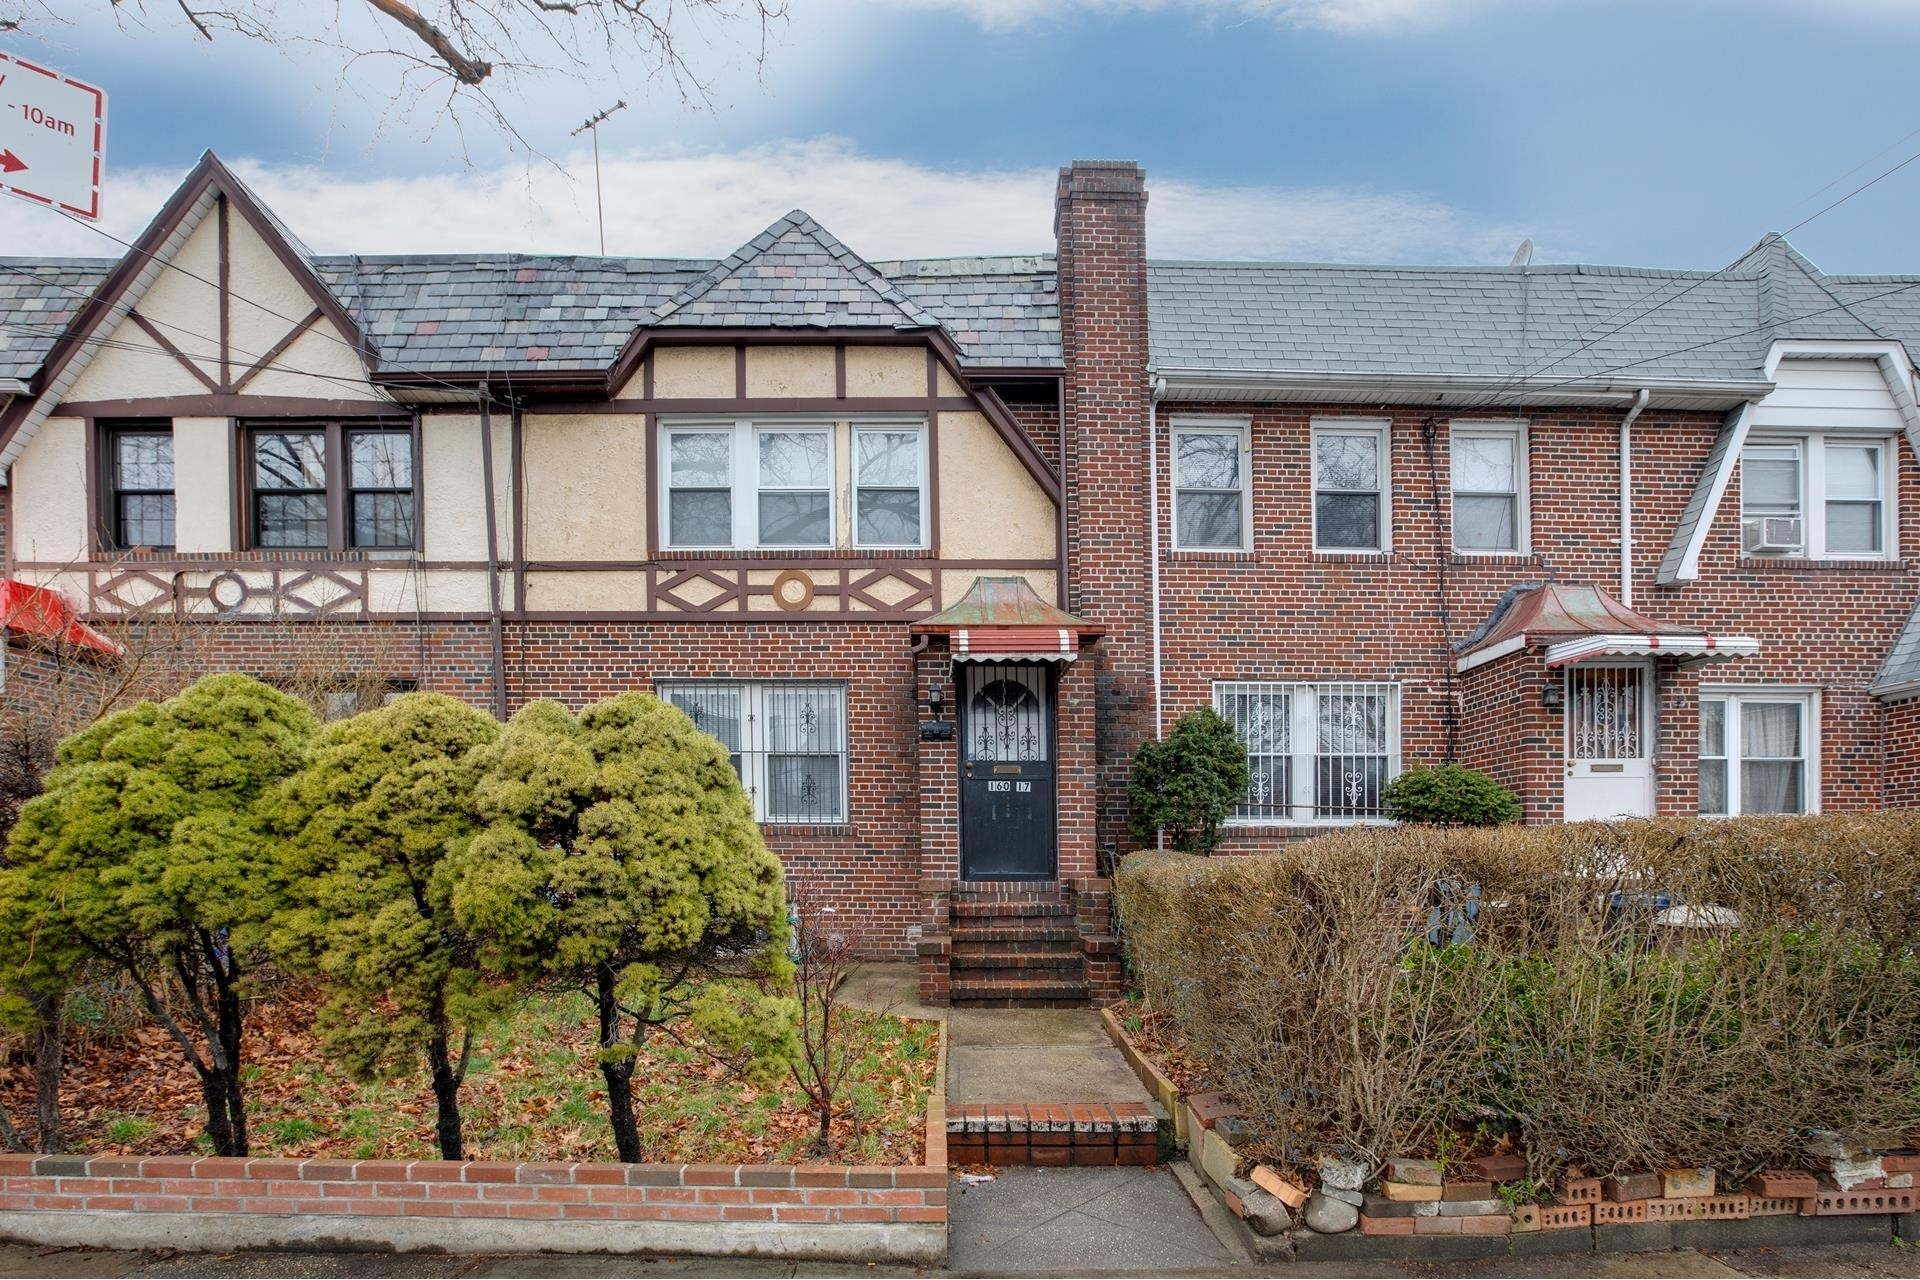 Single Family Townhouse at Jamaica Hills, Queens, NY 11432